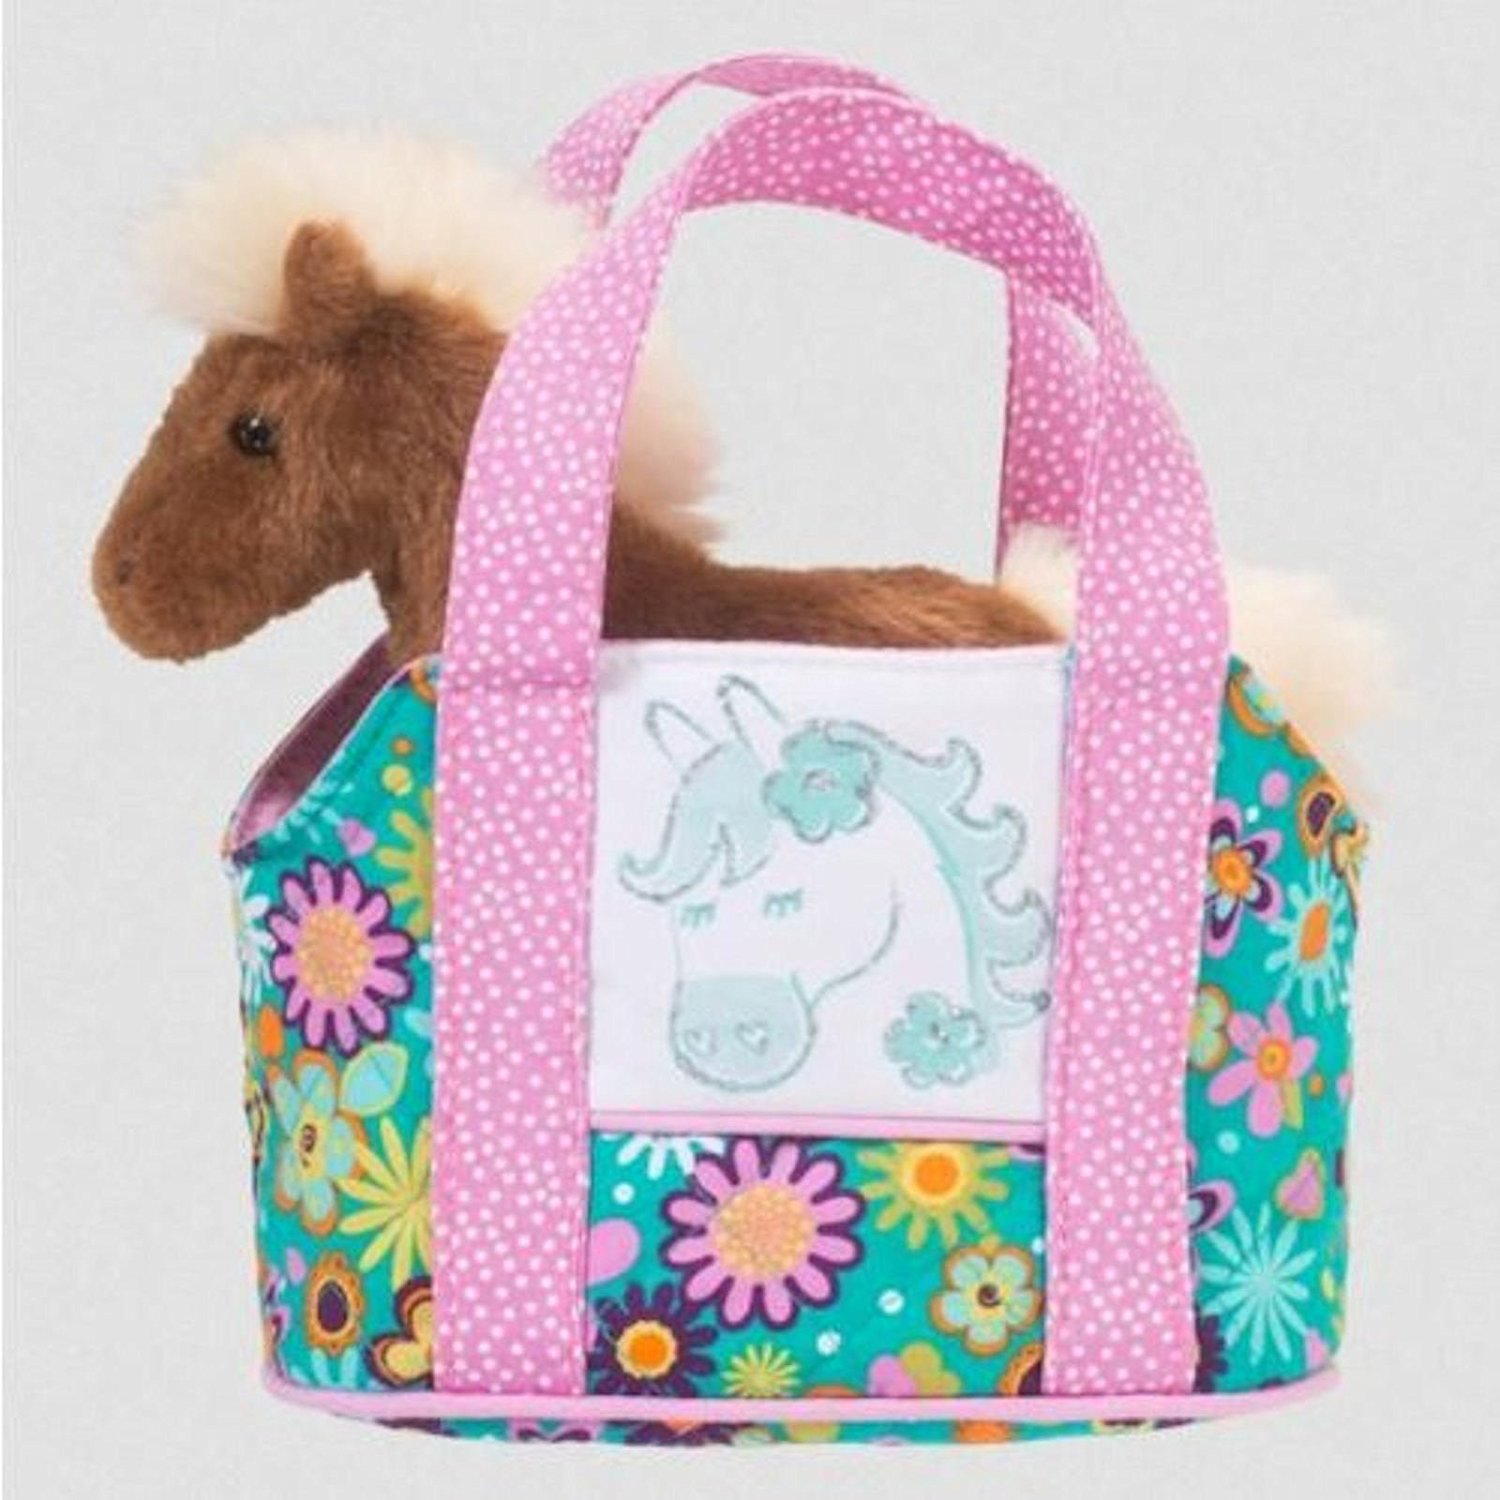 Douglas Toys Flower Horse Sassy Pet Sak Tote with Plush Horse Toy, By Douglas Cuddle Toys Ship from US by